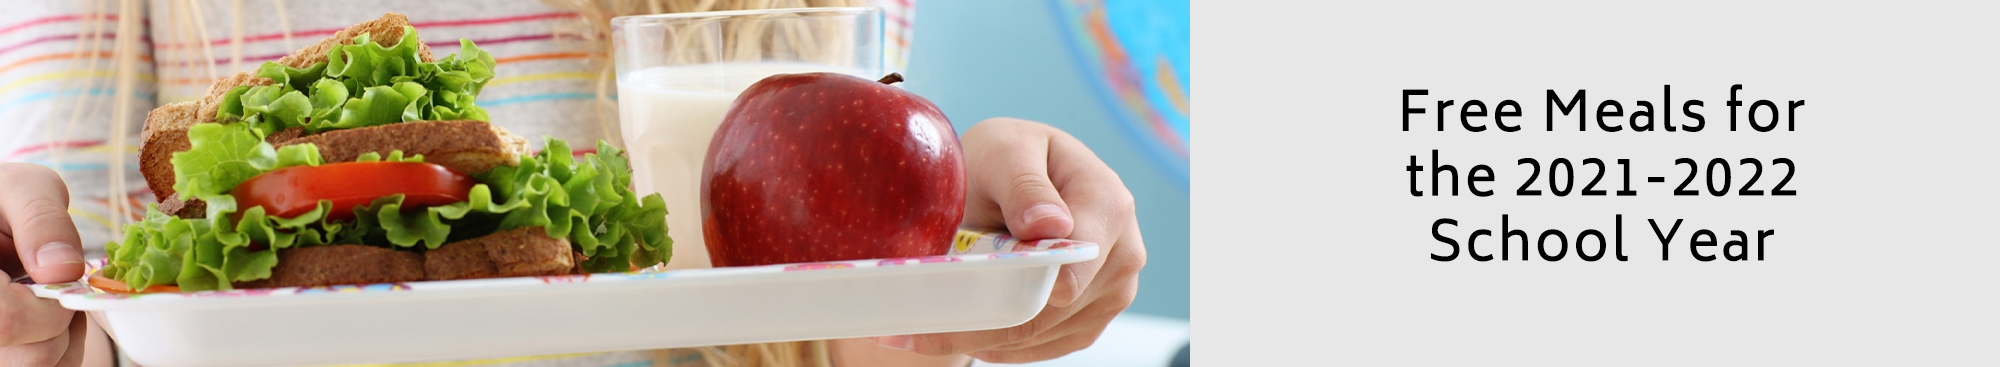 Free Meals for the 2021-2022 School Year